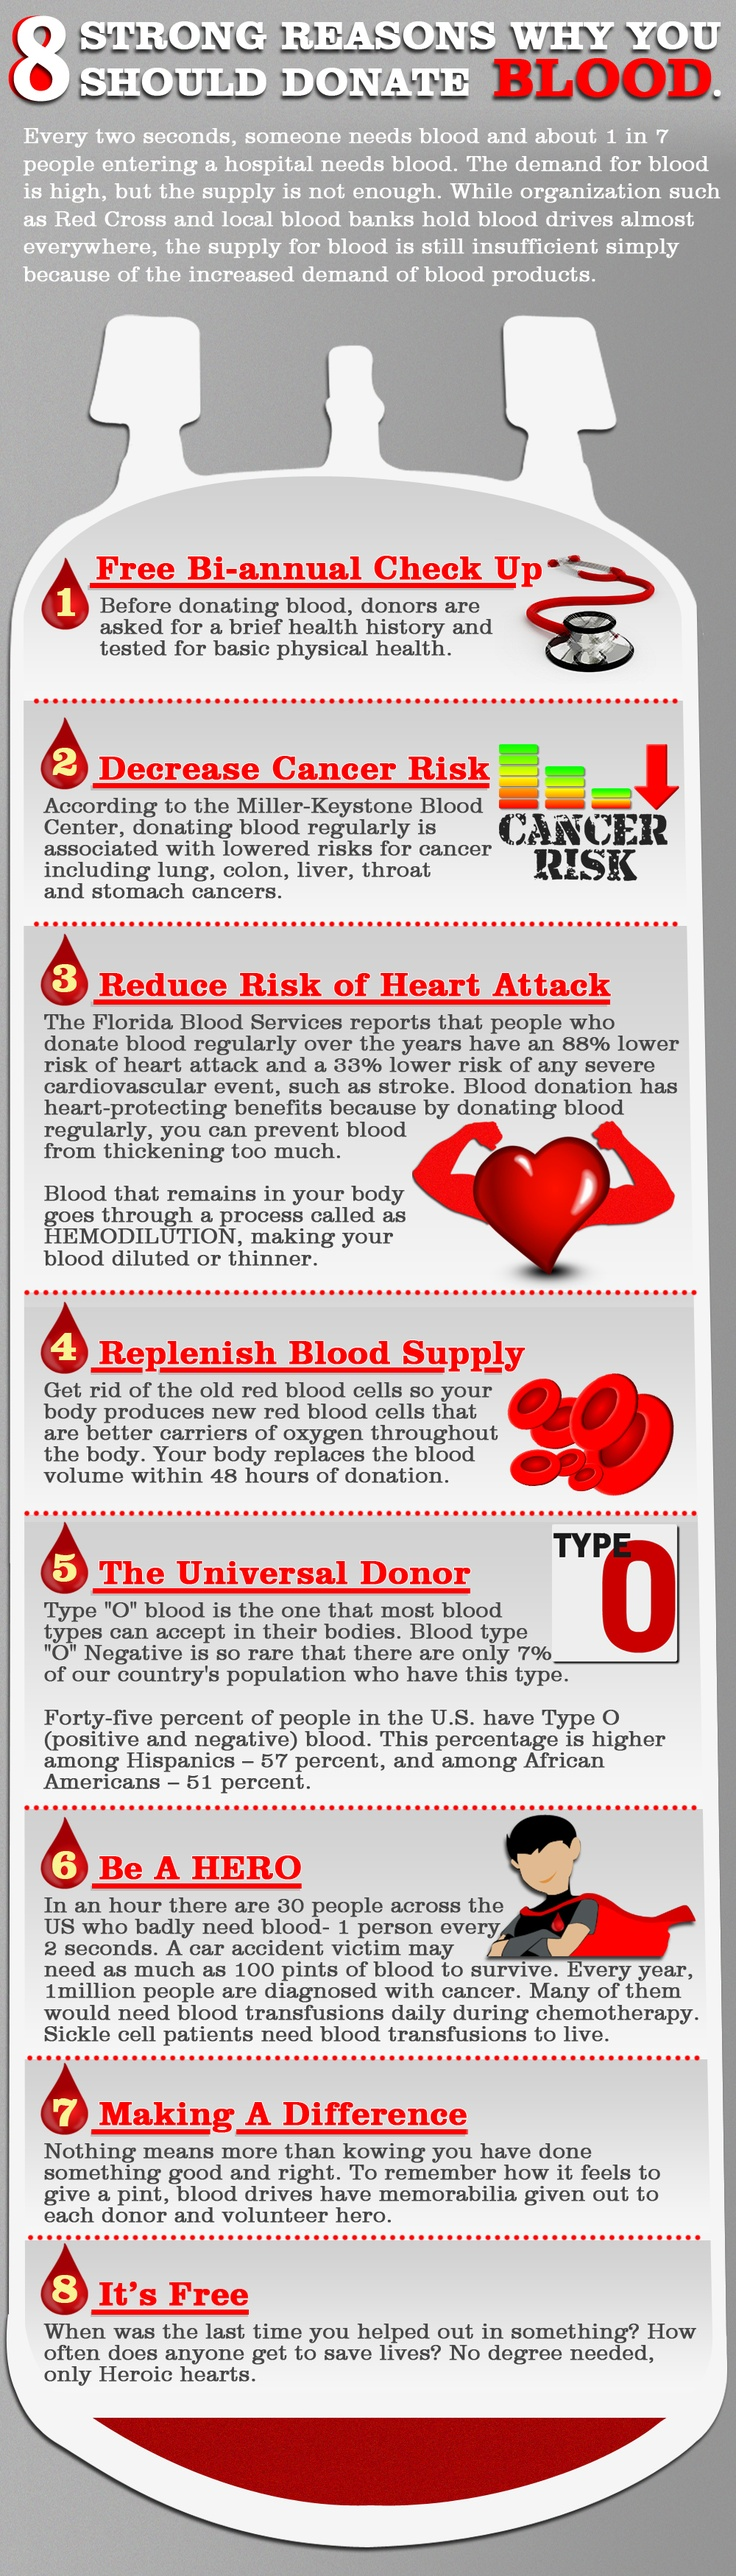 8 Strong Reasons Why You Should Donate Blood. bloodbanker.com